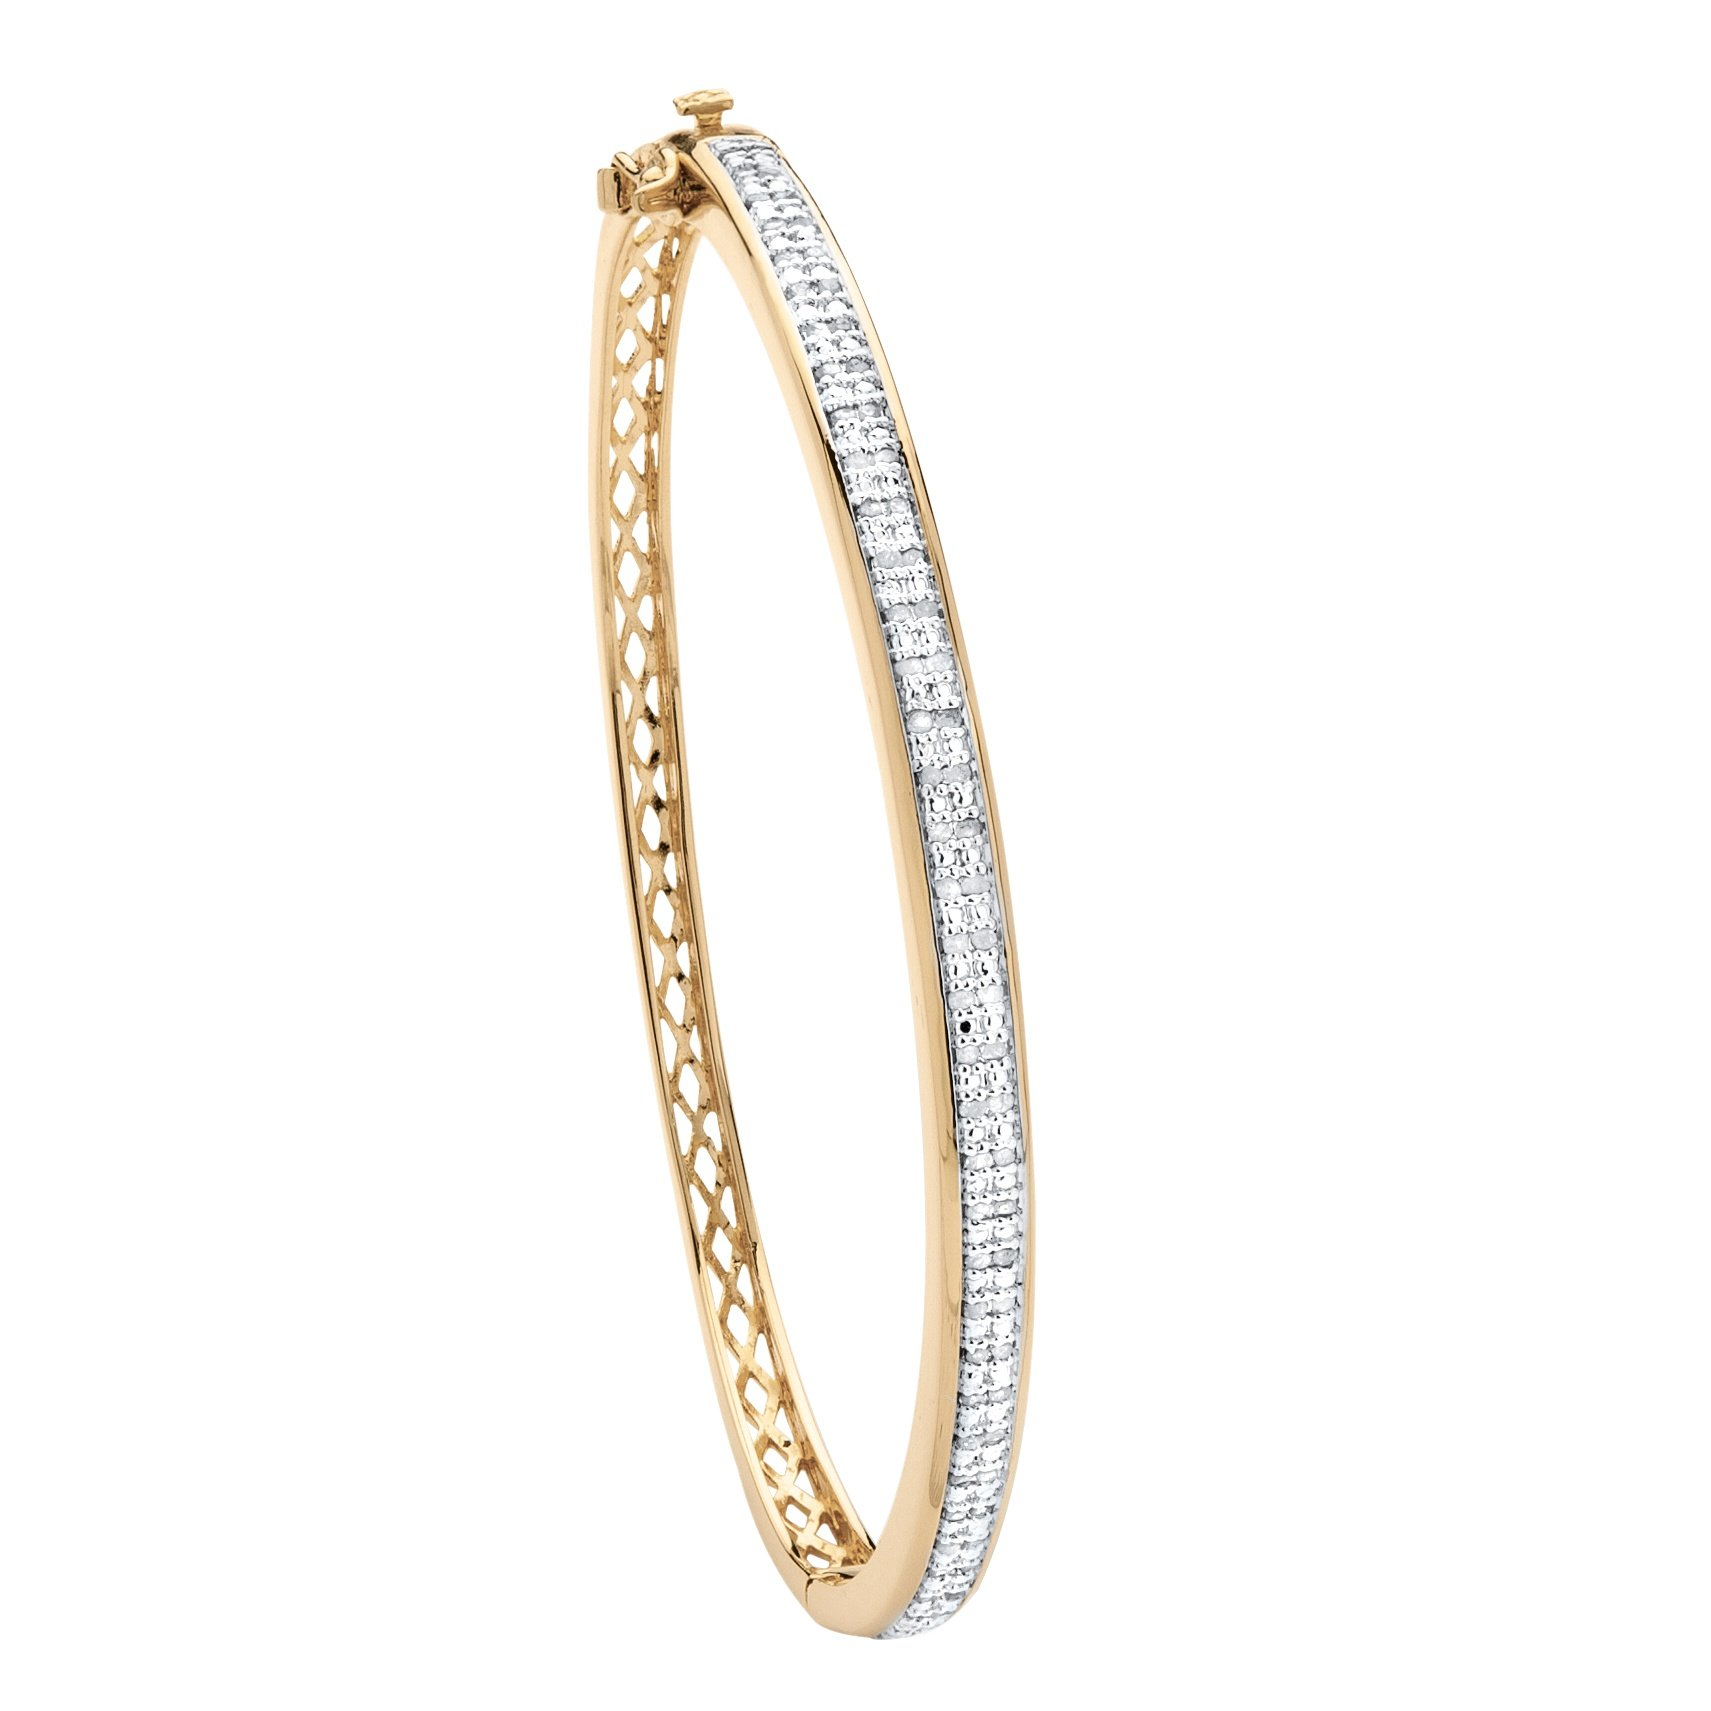 Palm Beach Jewelry 18K Yellow Gold-Plated Bangle Bracelet (5mm), 3/8 cttw Round Diamond, 7'' (IJ Color, I3 Clarity)